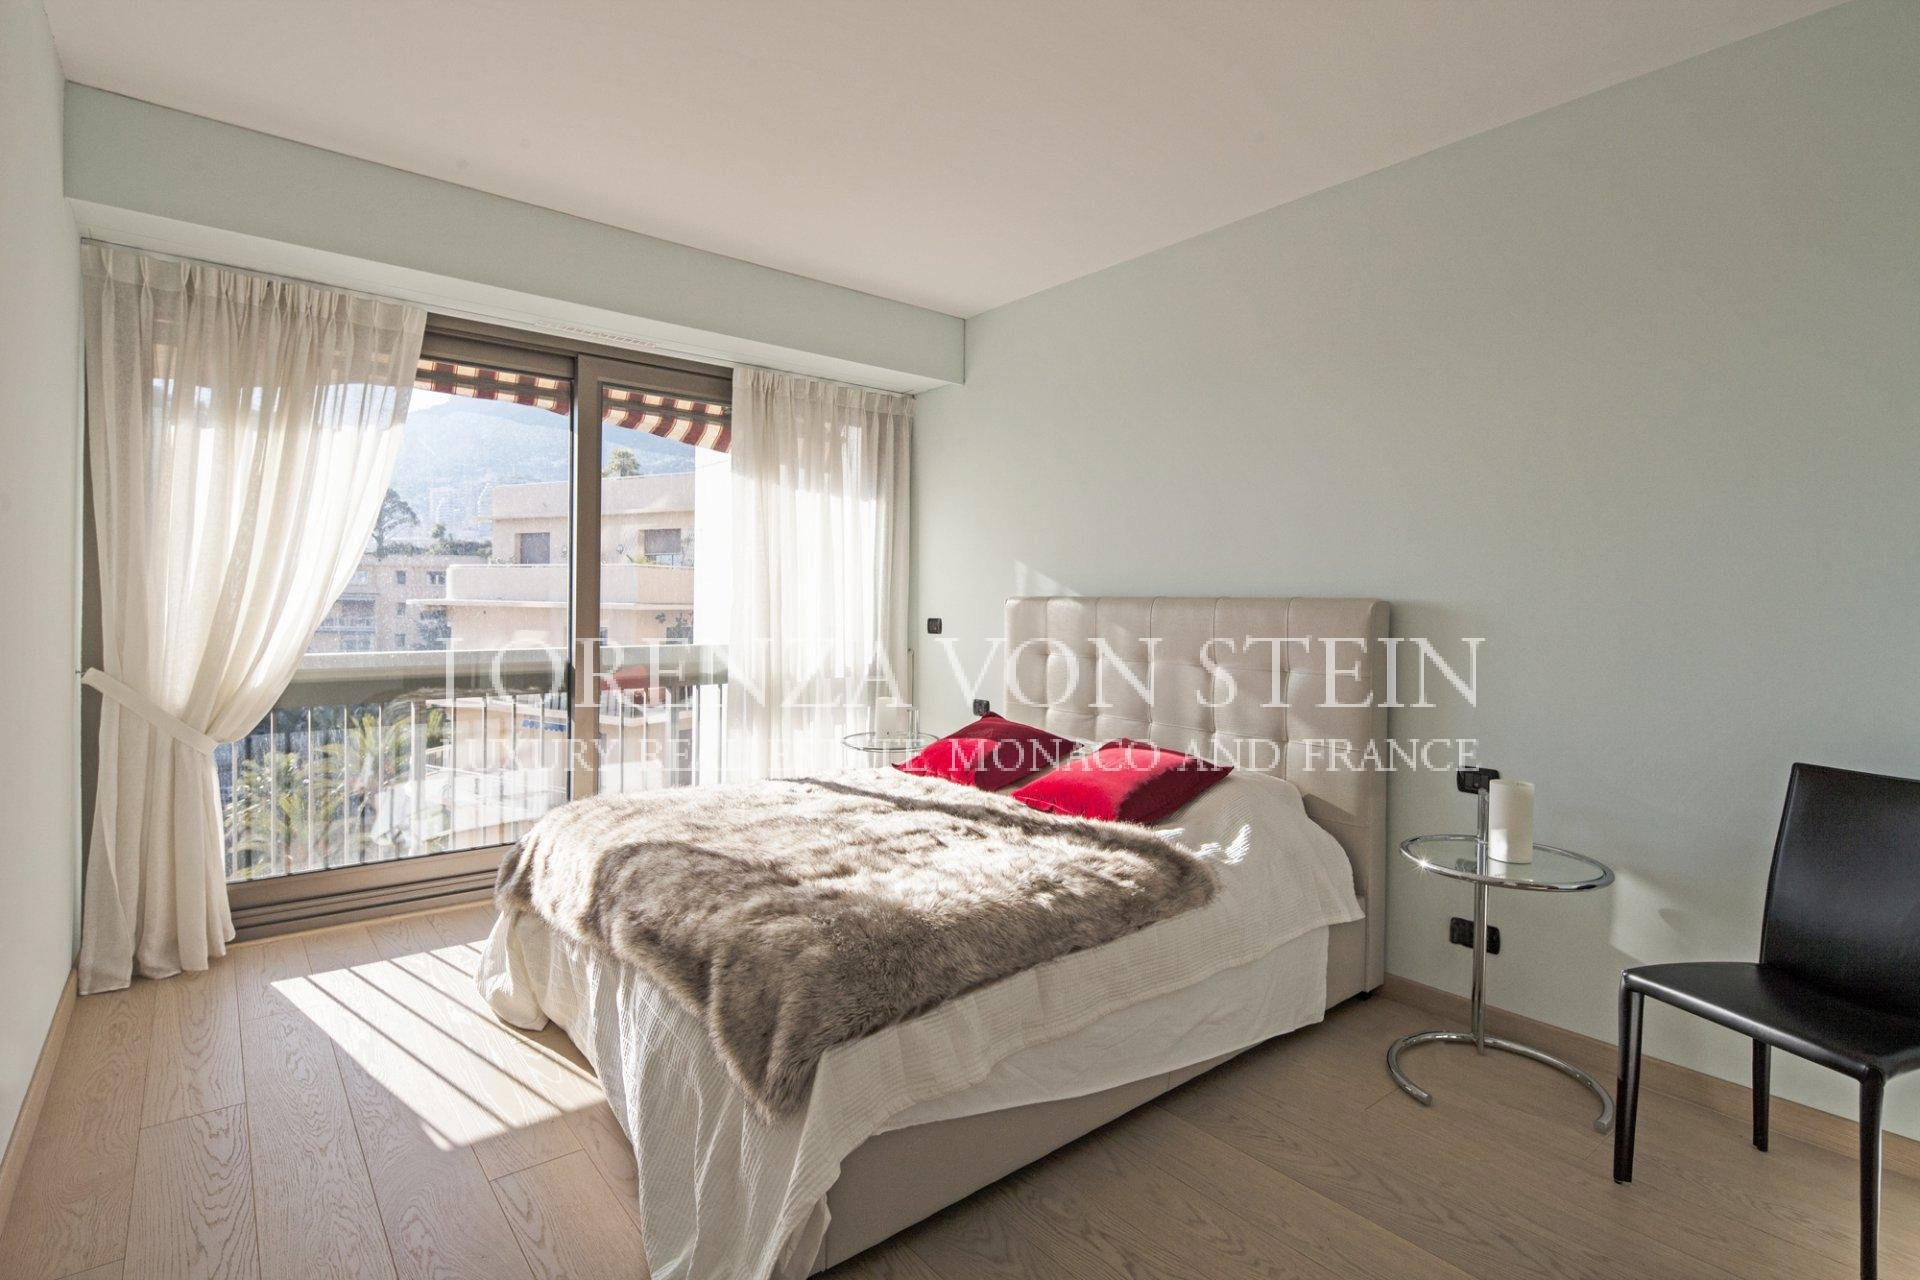 Bedroom, natural light, wood floors